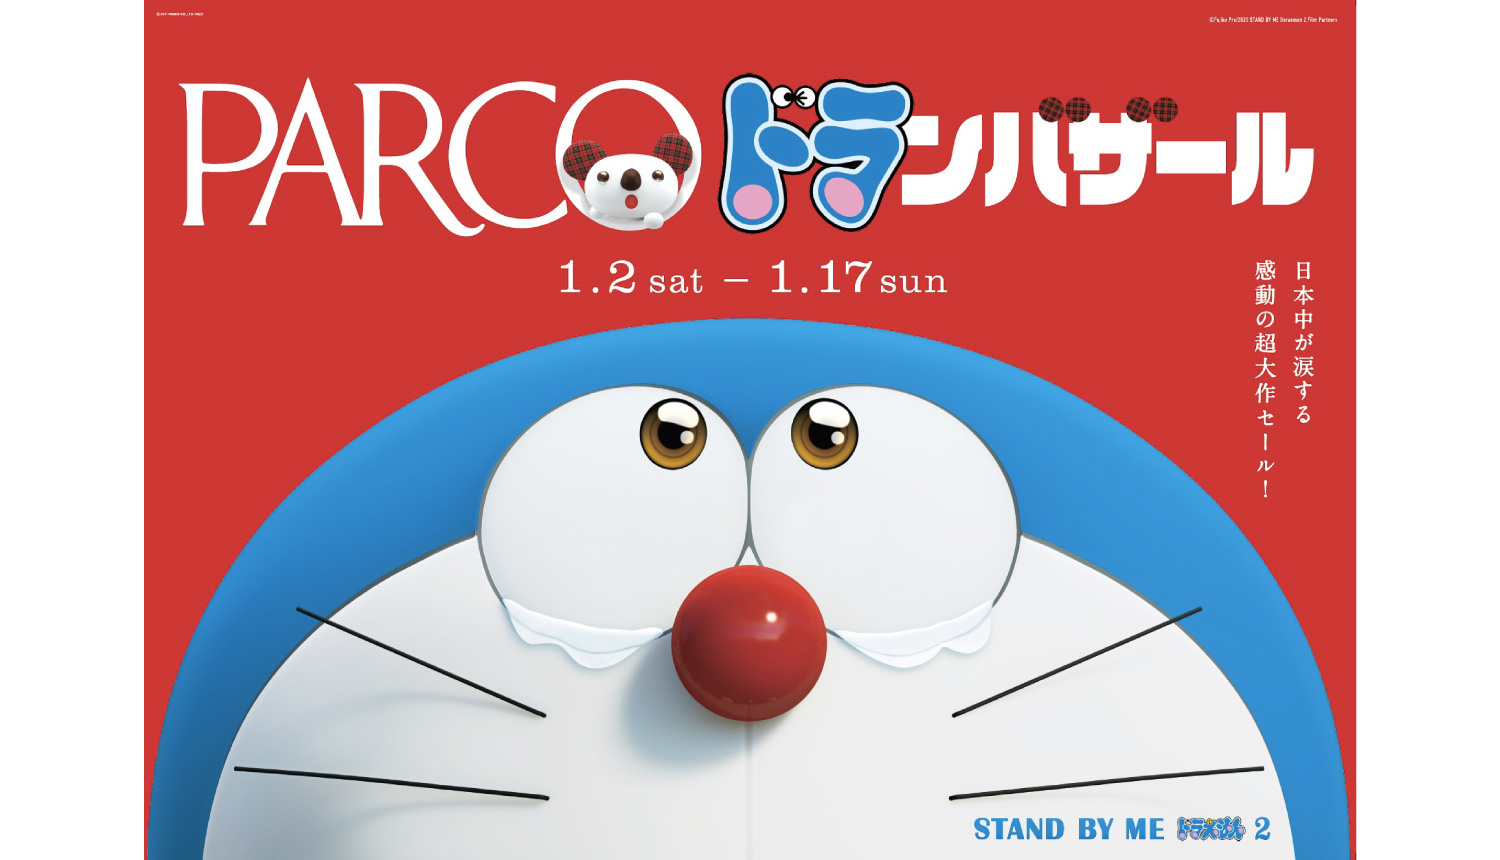 PARCO-STAND-BY-ME-Doraemon-2-パルコ-STAND-BY-ME-ドラえもん2-哆啦A夢